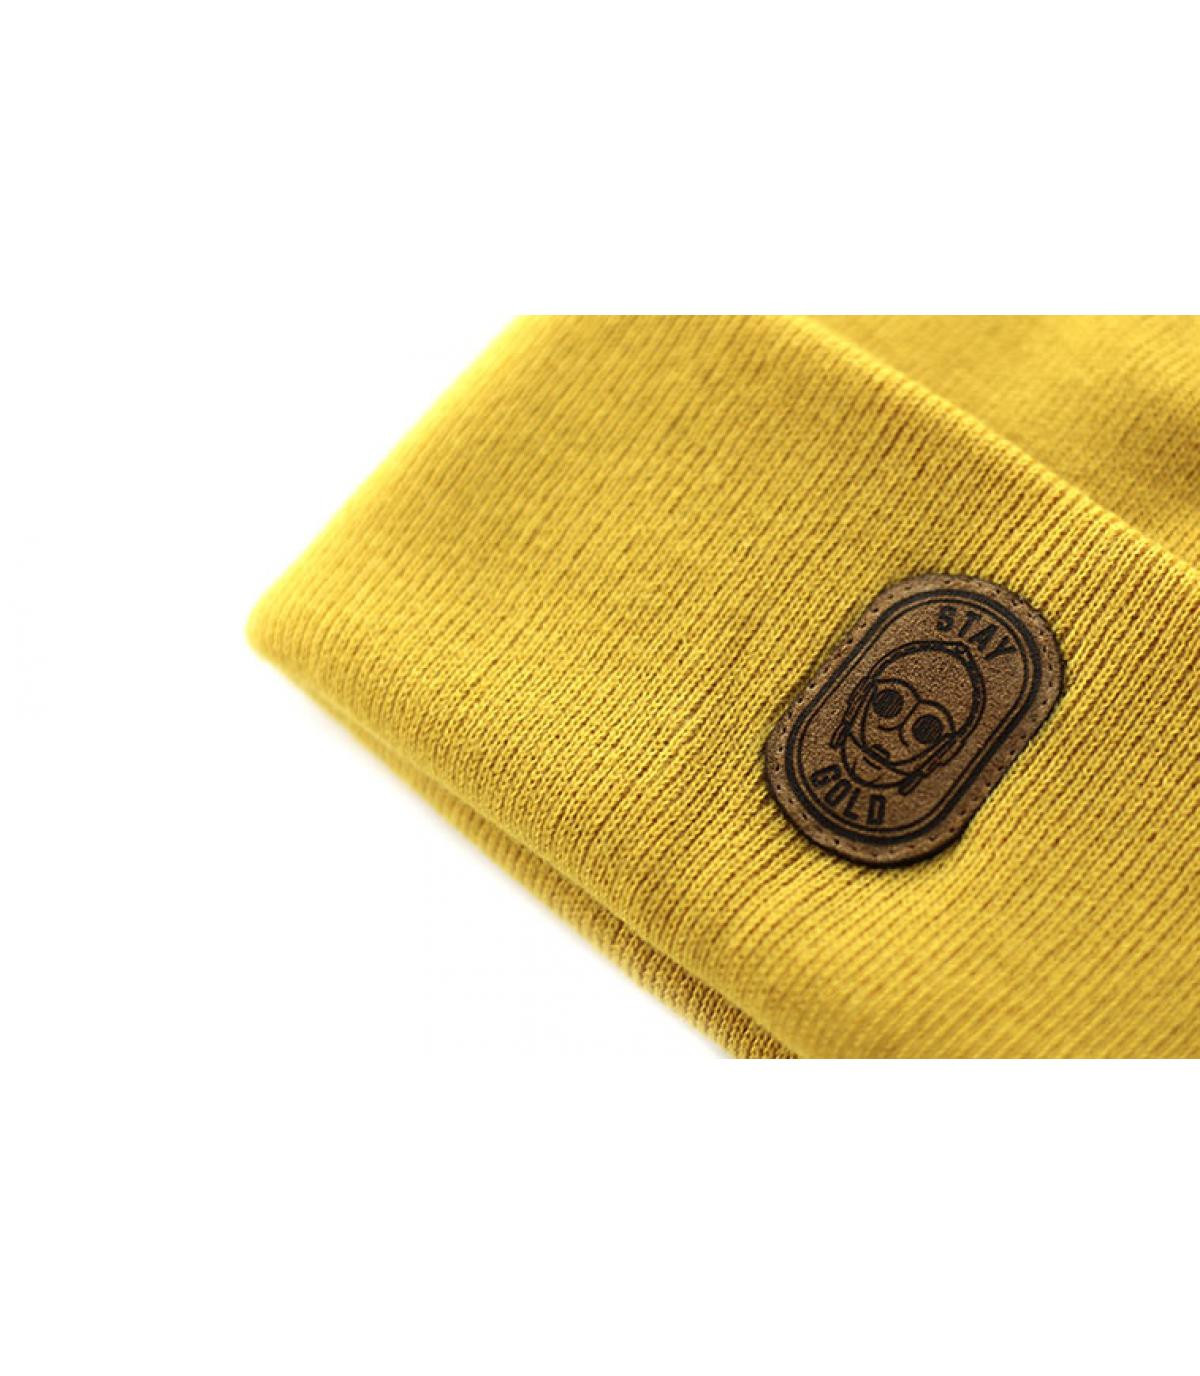 Détails Beanie Stay Gold mustard - image 3